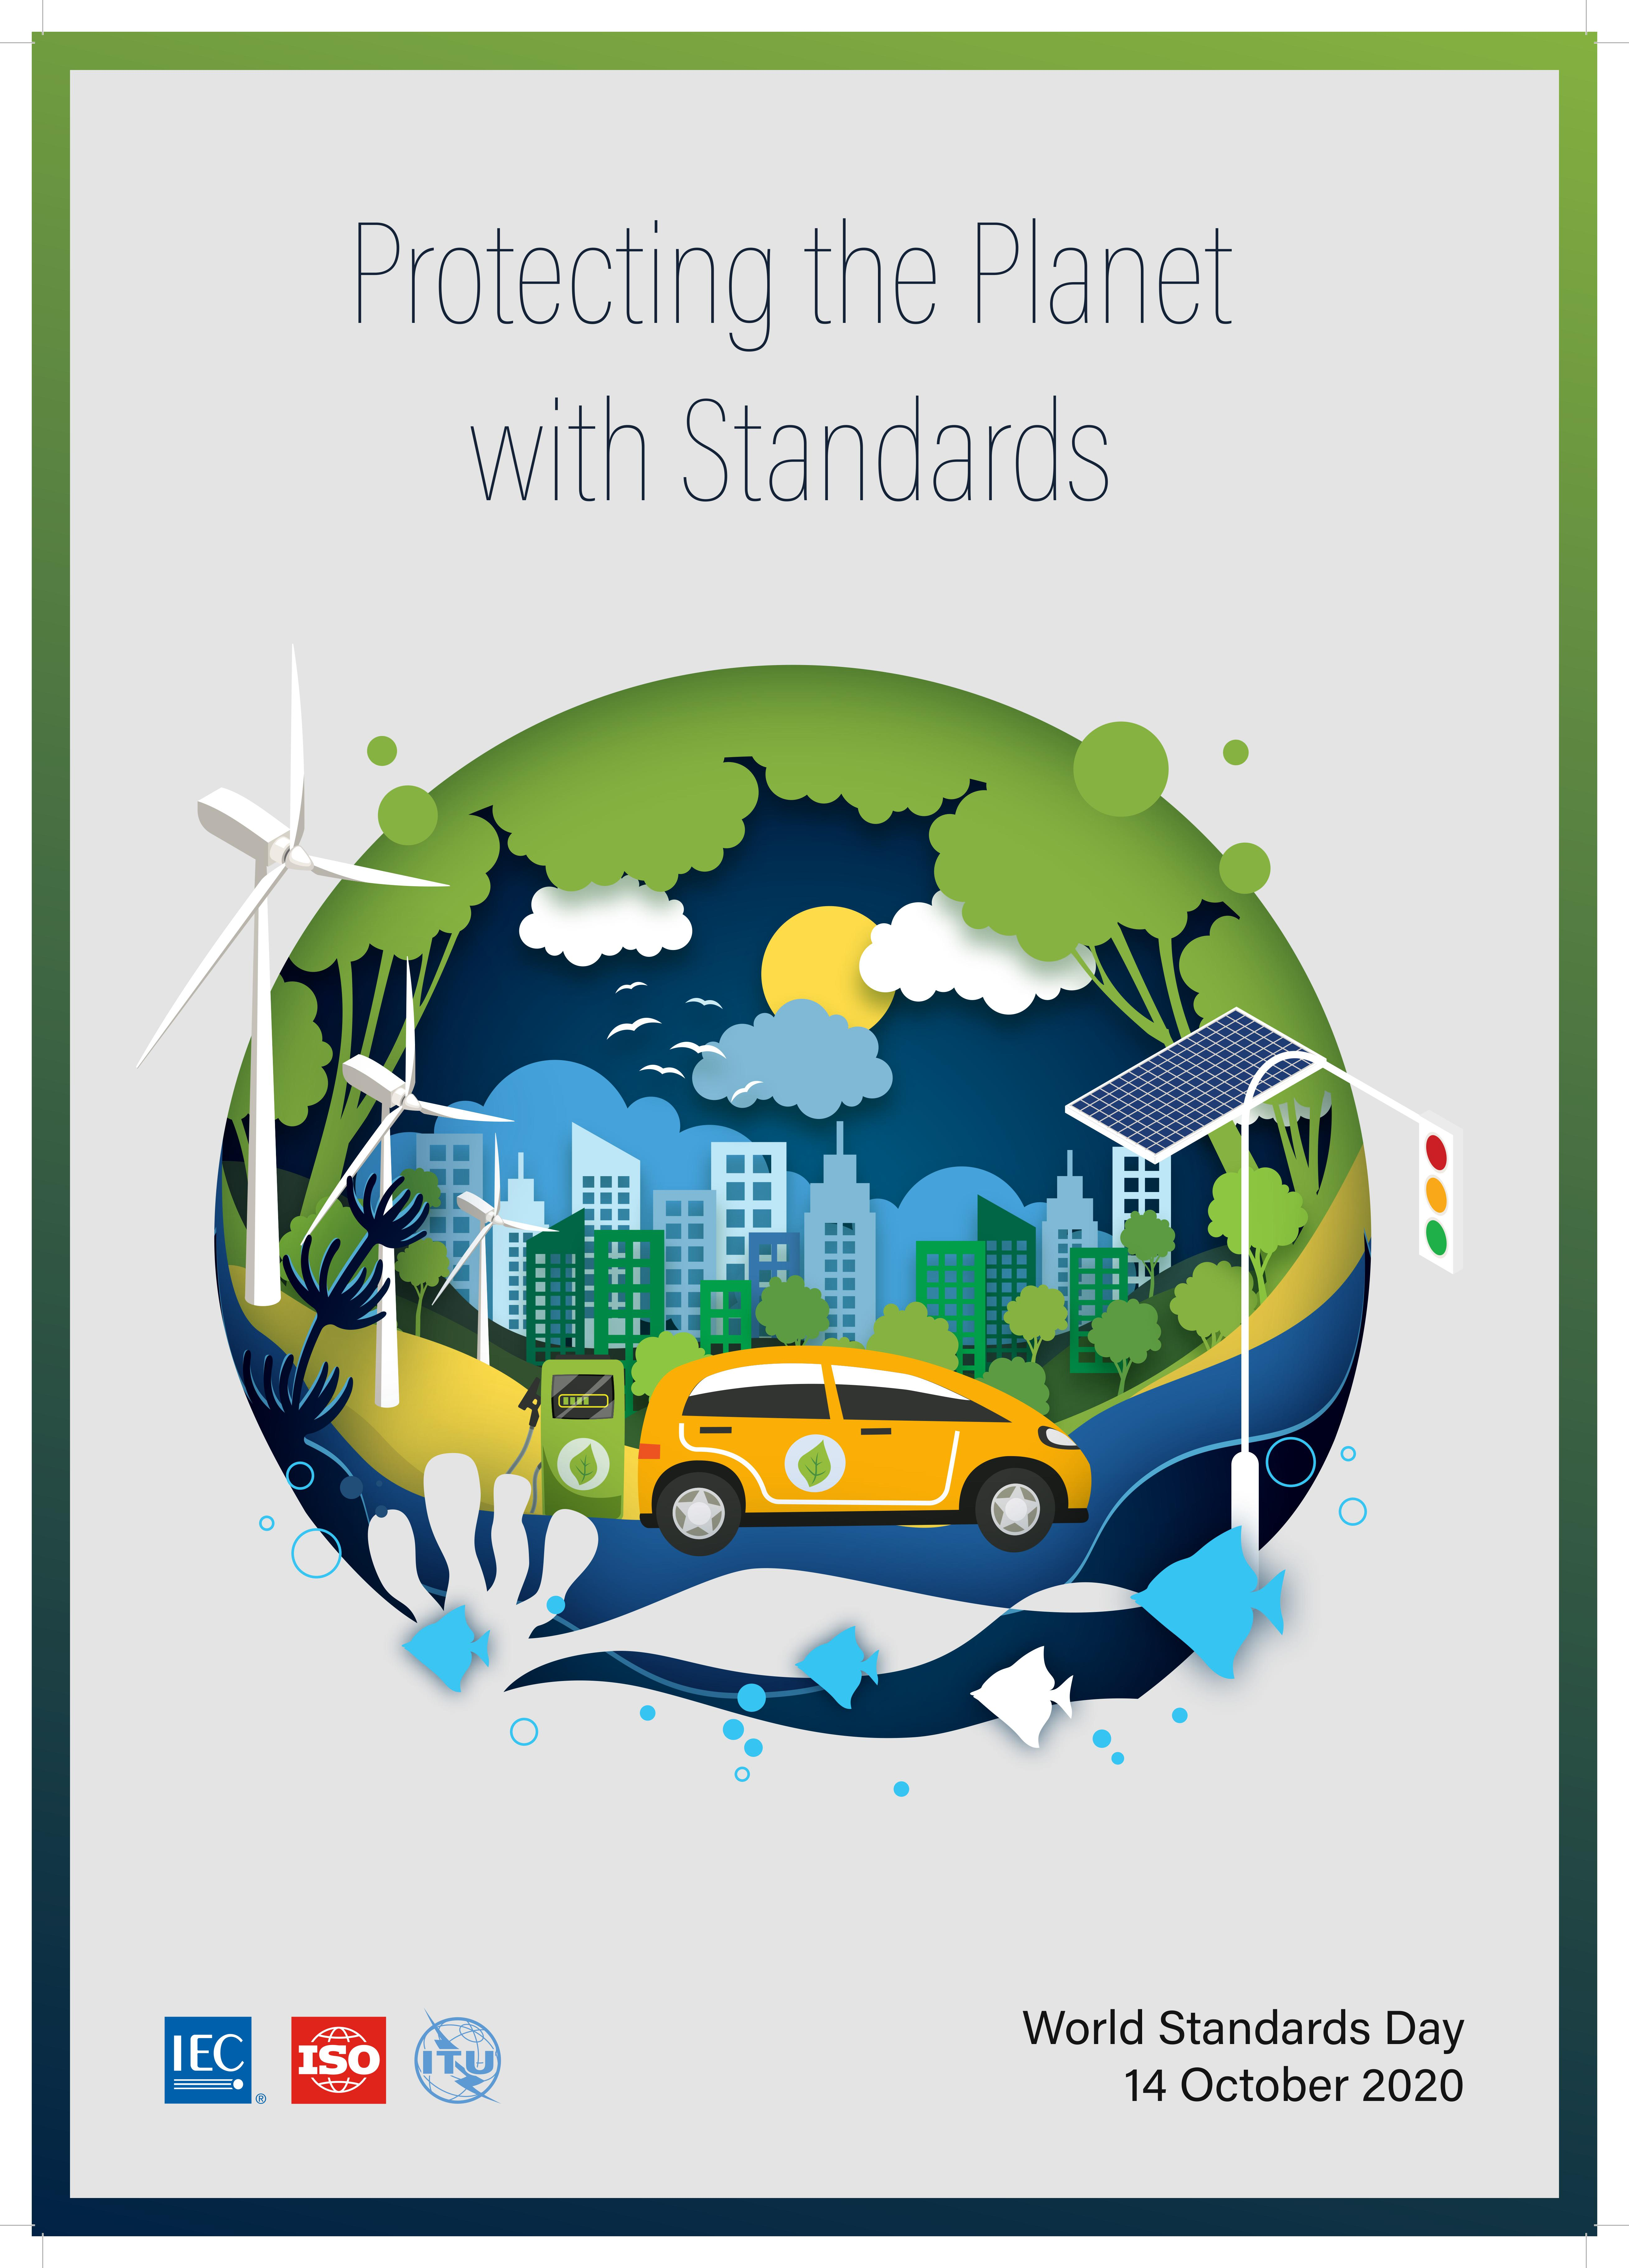 World Standards Day 2020: Protecting the Planet with Standards